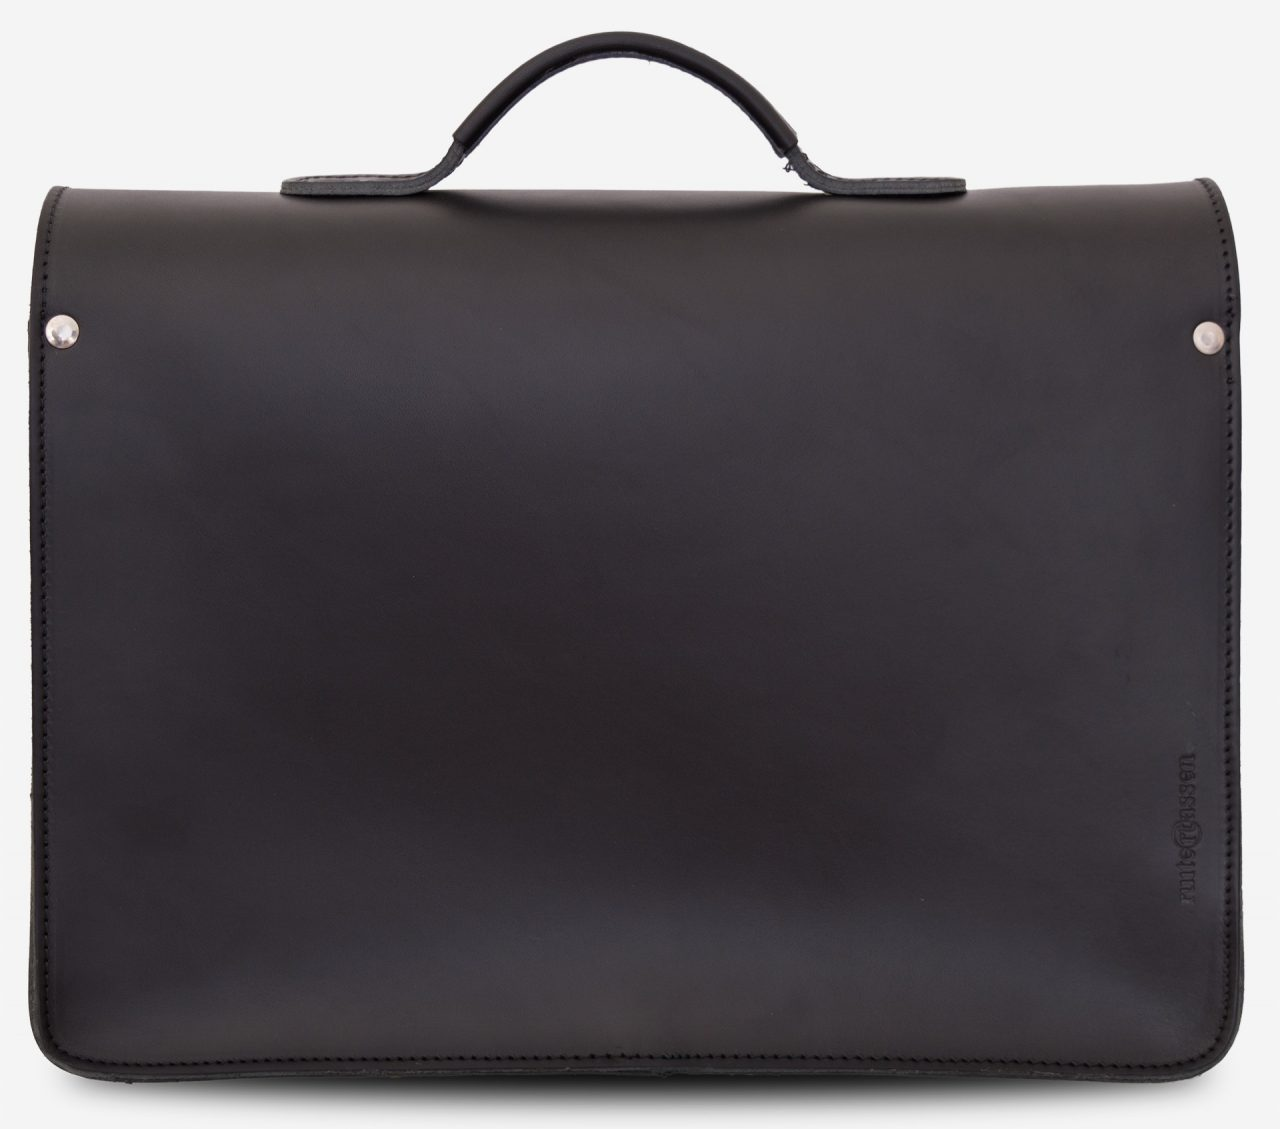 Back view of black leather briefcase with one compartment 112103.